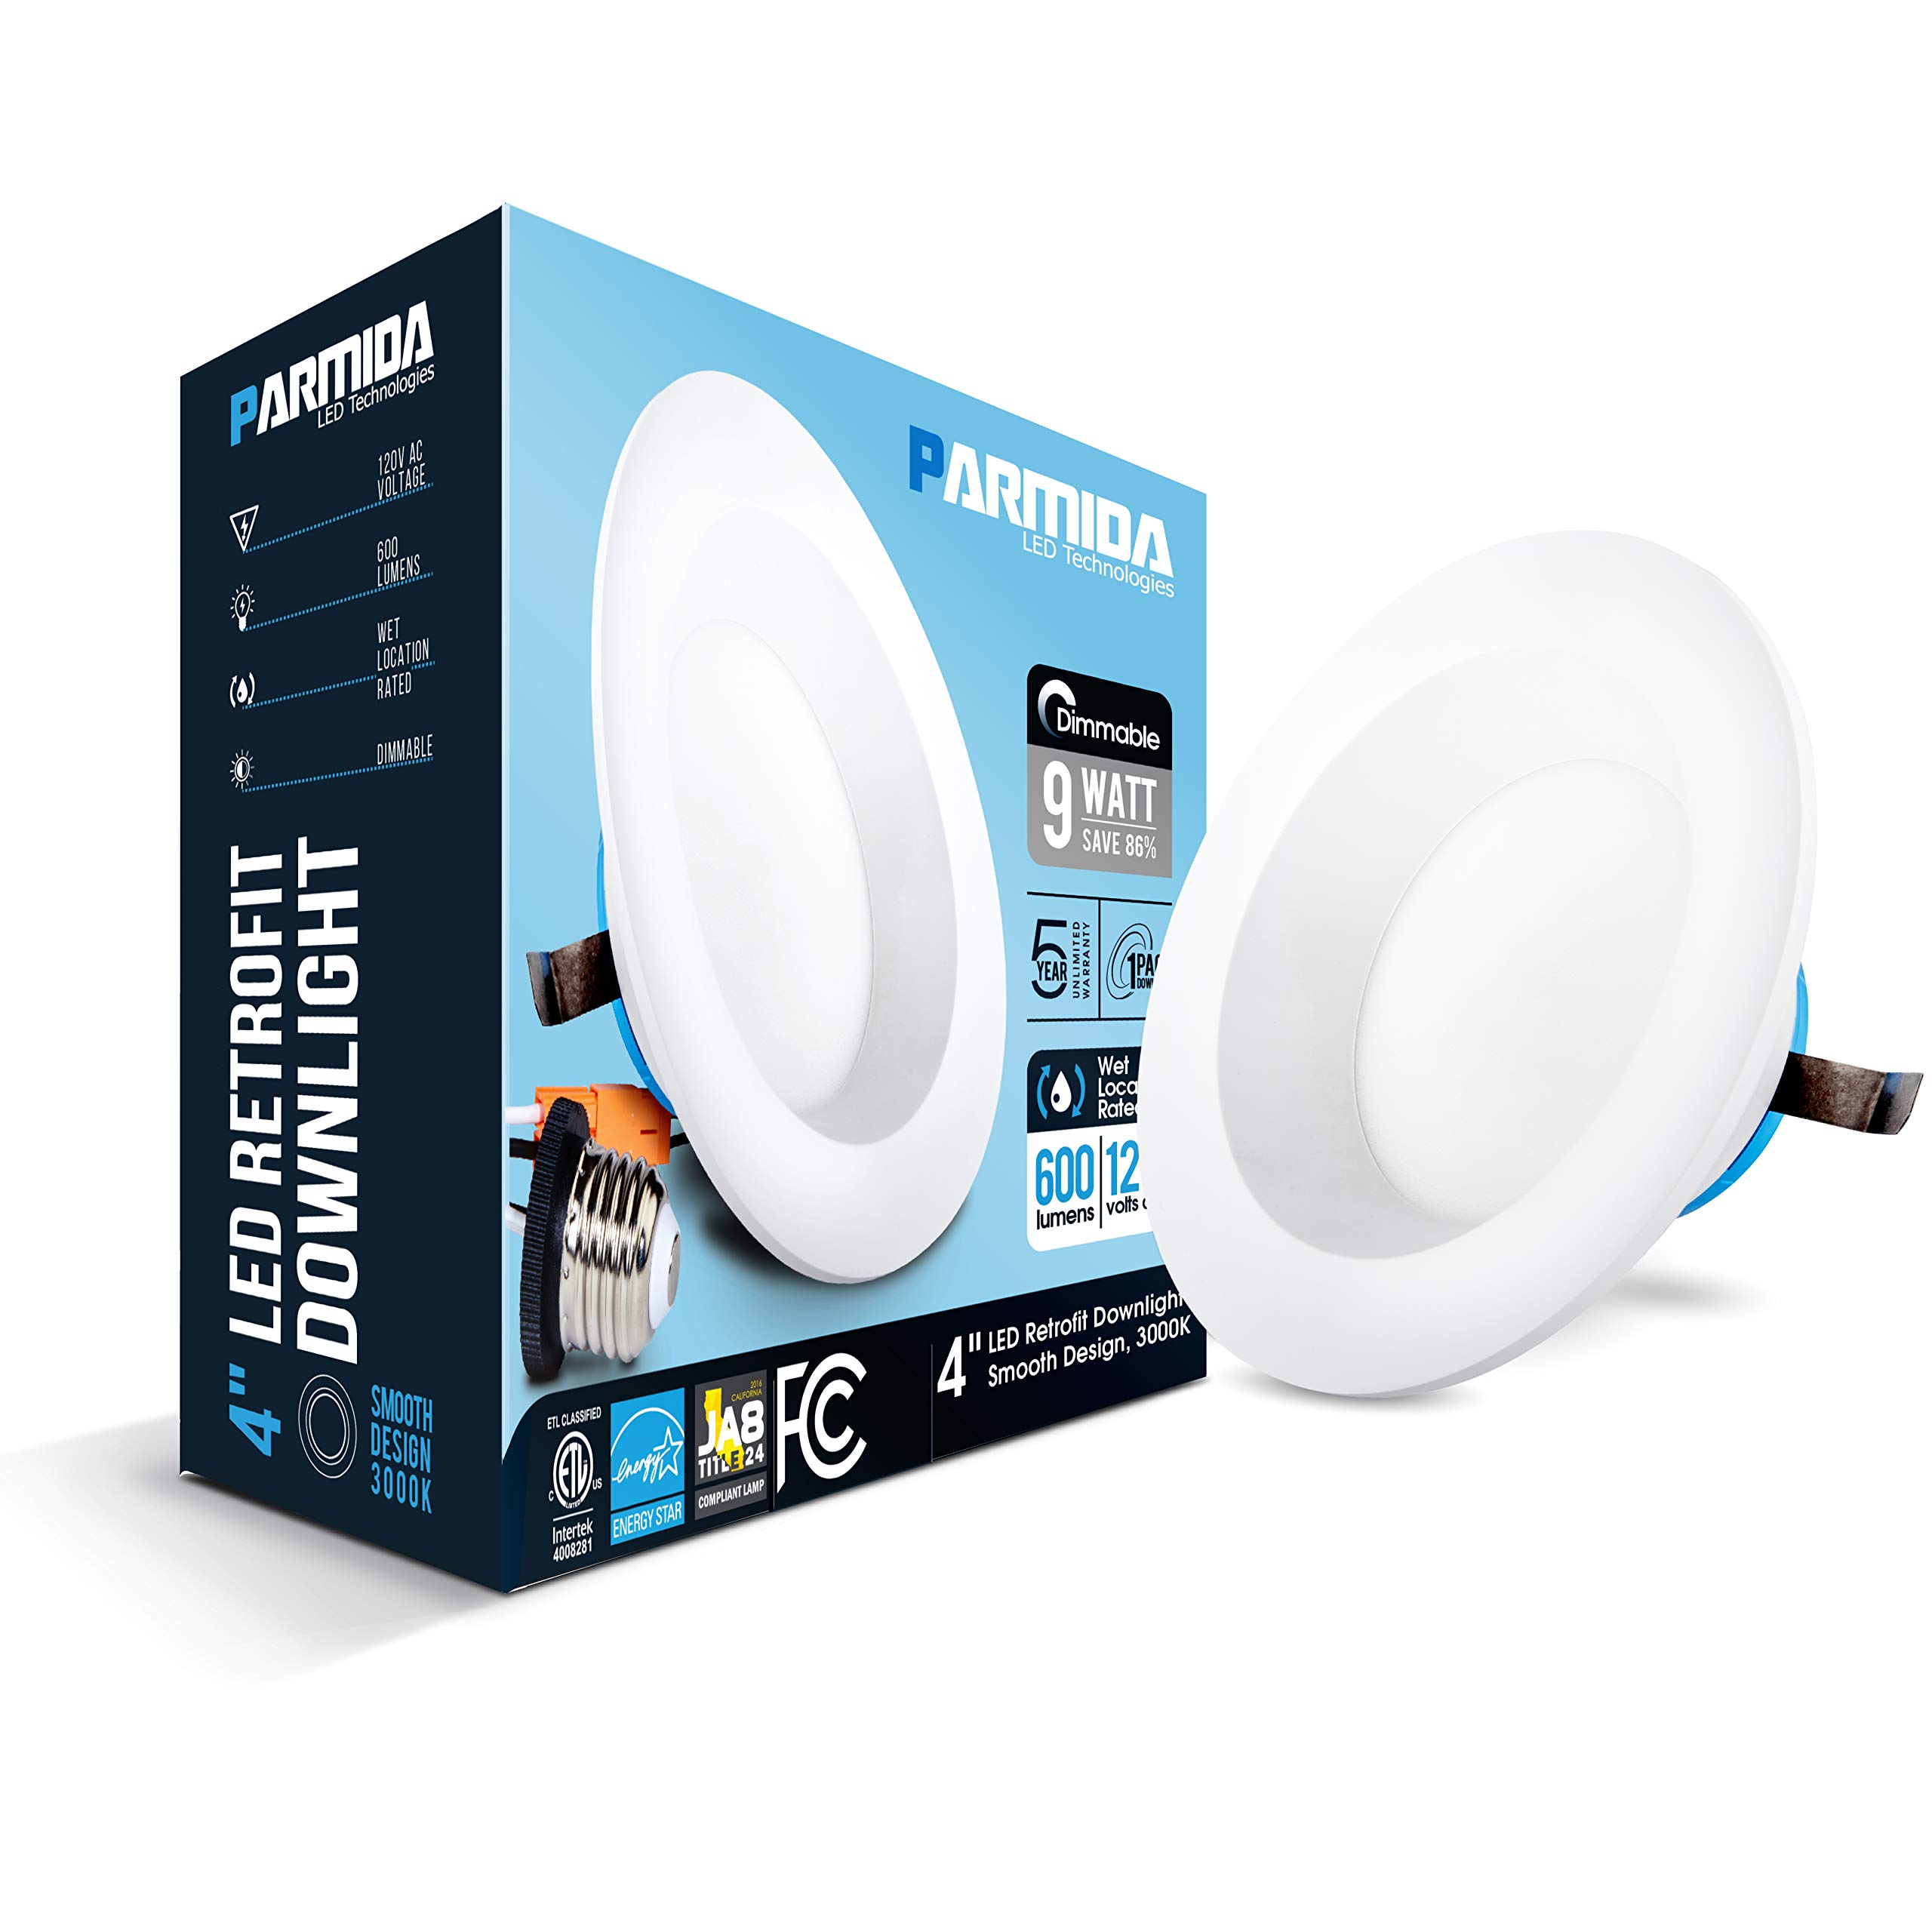 Parmida (4 Pack) 4 inch Dimmable LED Retrofit Recessed Downlight, 9W (65W Replacement), Smooth Design, 600lm, 3000K (Soft White), Energy Star & ETL, LED Ceiling Can Light, LED Trim